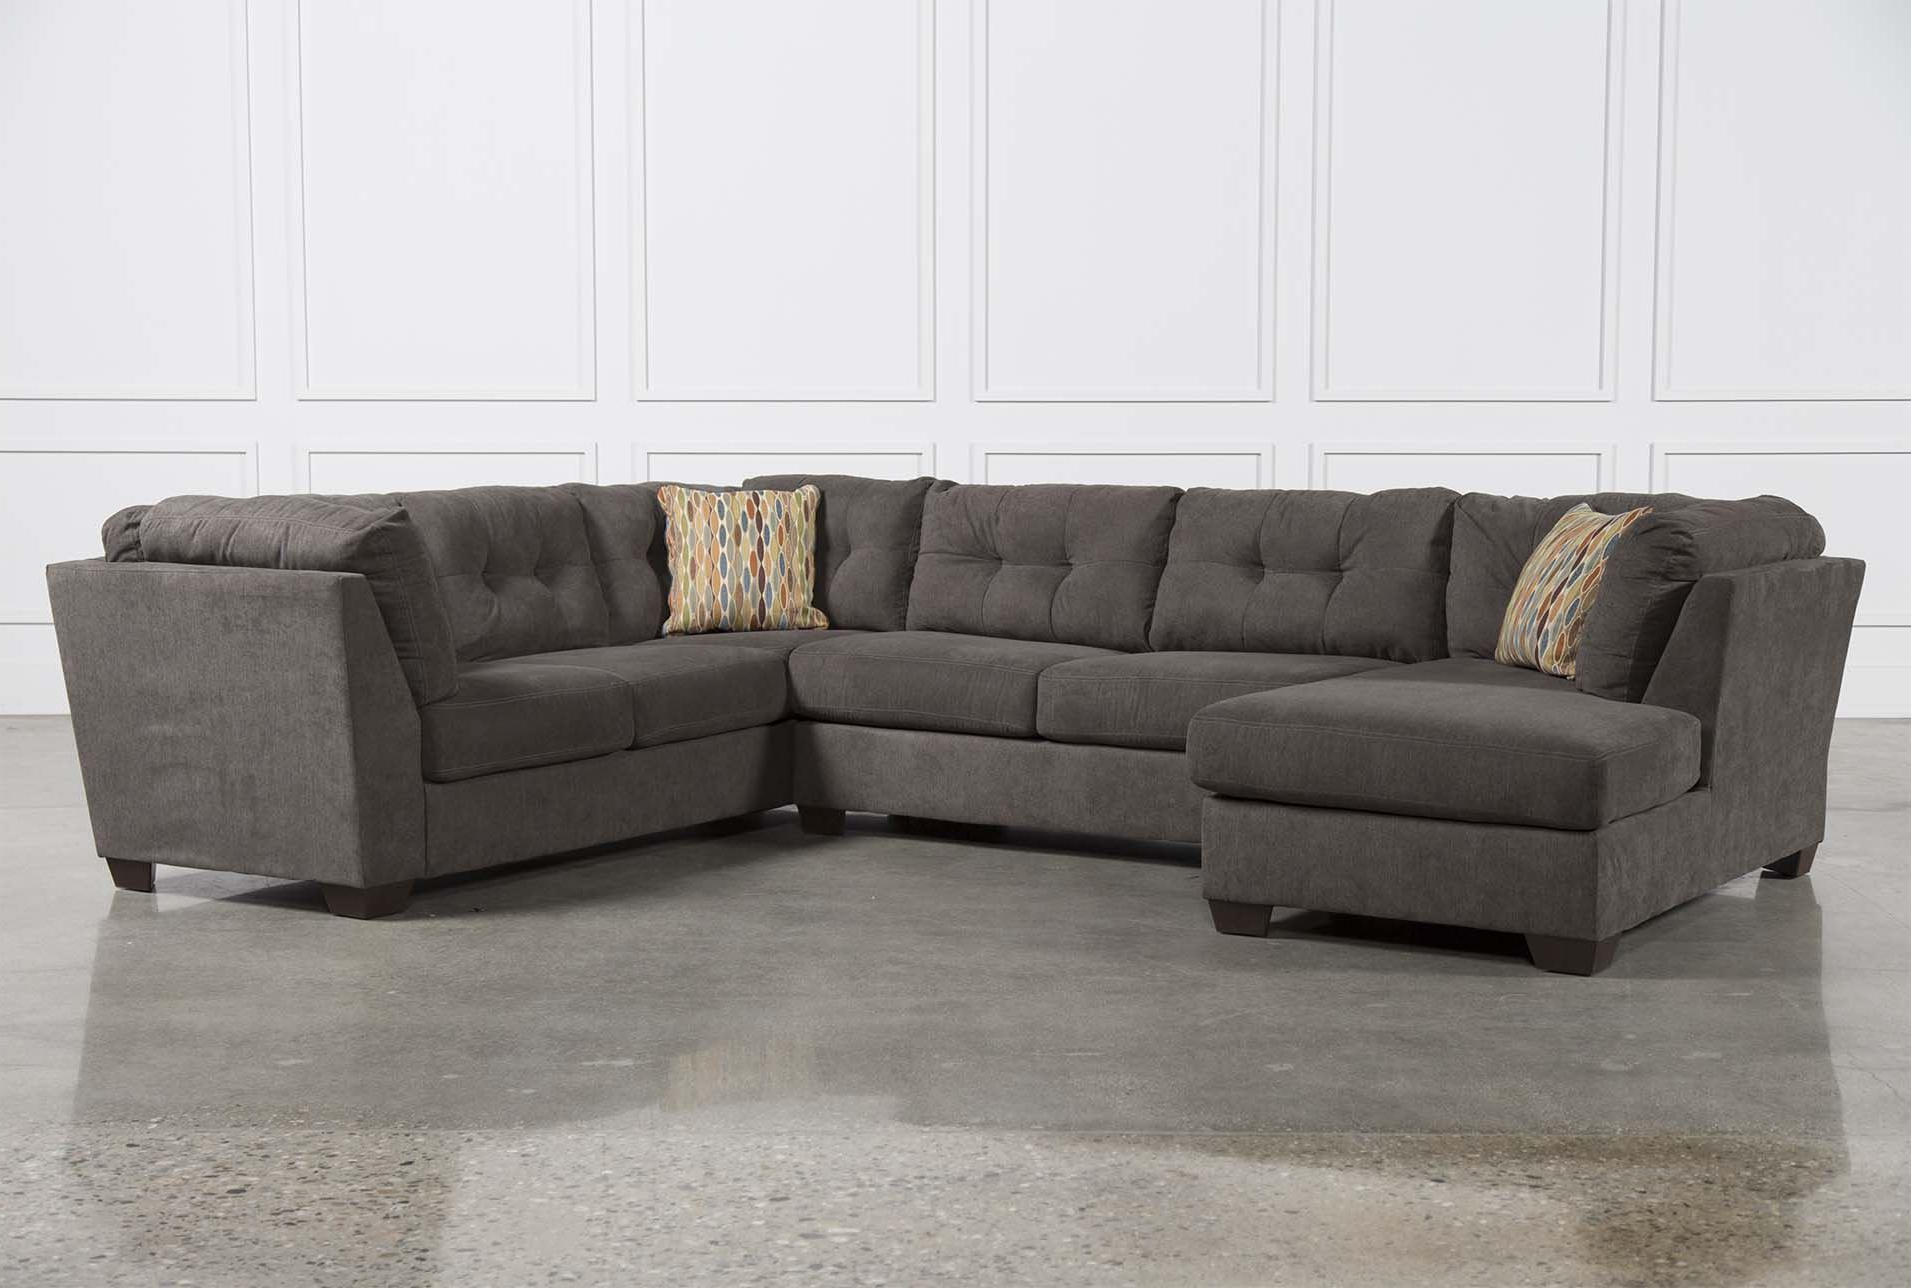 Http://tidex/sectional Sofa Beds.html Http://tidex/wp Content Intended For Most Popular Declan 3 Piece Power Reclining Sectionals With Left Facing Console Loveseat (Gallery 10 of 20)